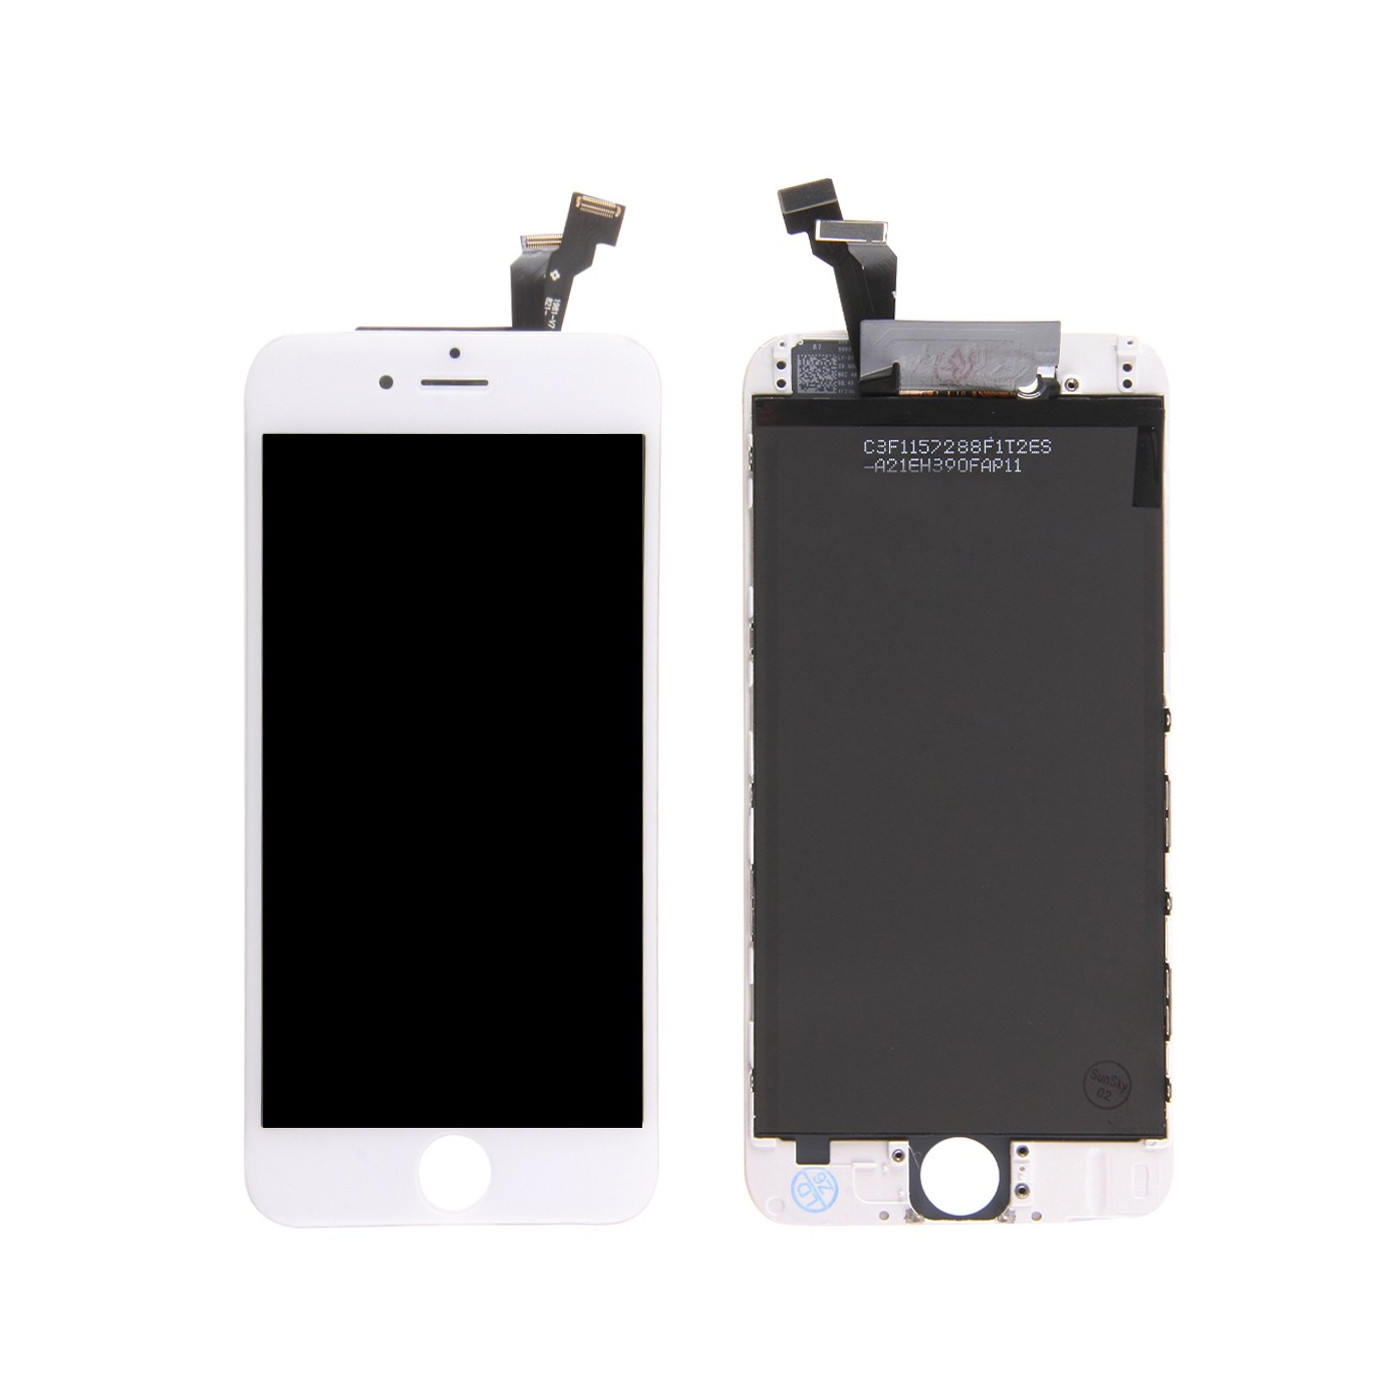 DISPLAY LCD VETRO TOUCH per Apple iPhone 6 BIANCO SCHERMO ORIGINALE TIANMA